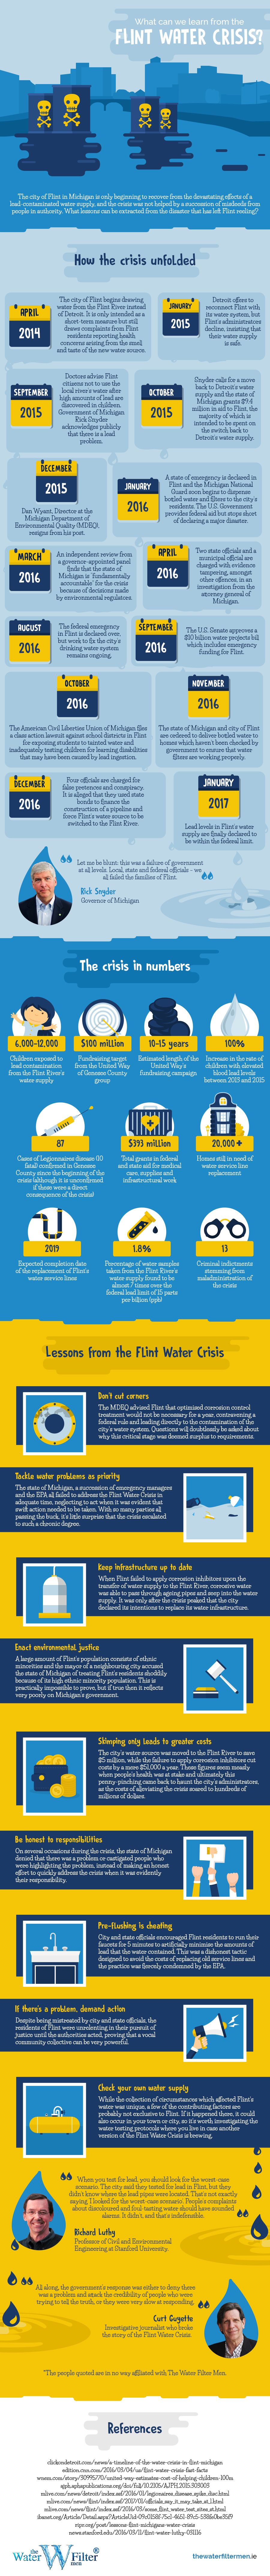 What Can We Learn From the Flint Water Crisis? #Infographic